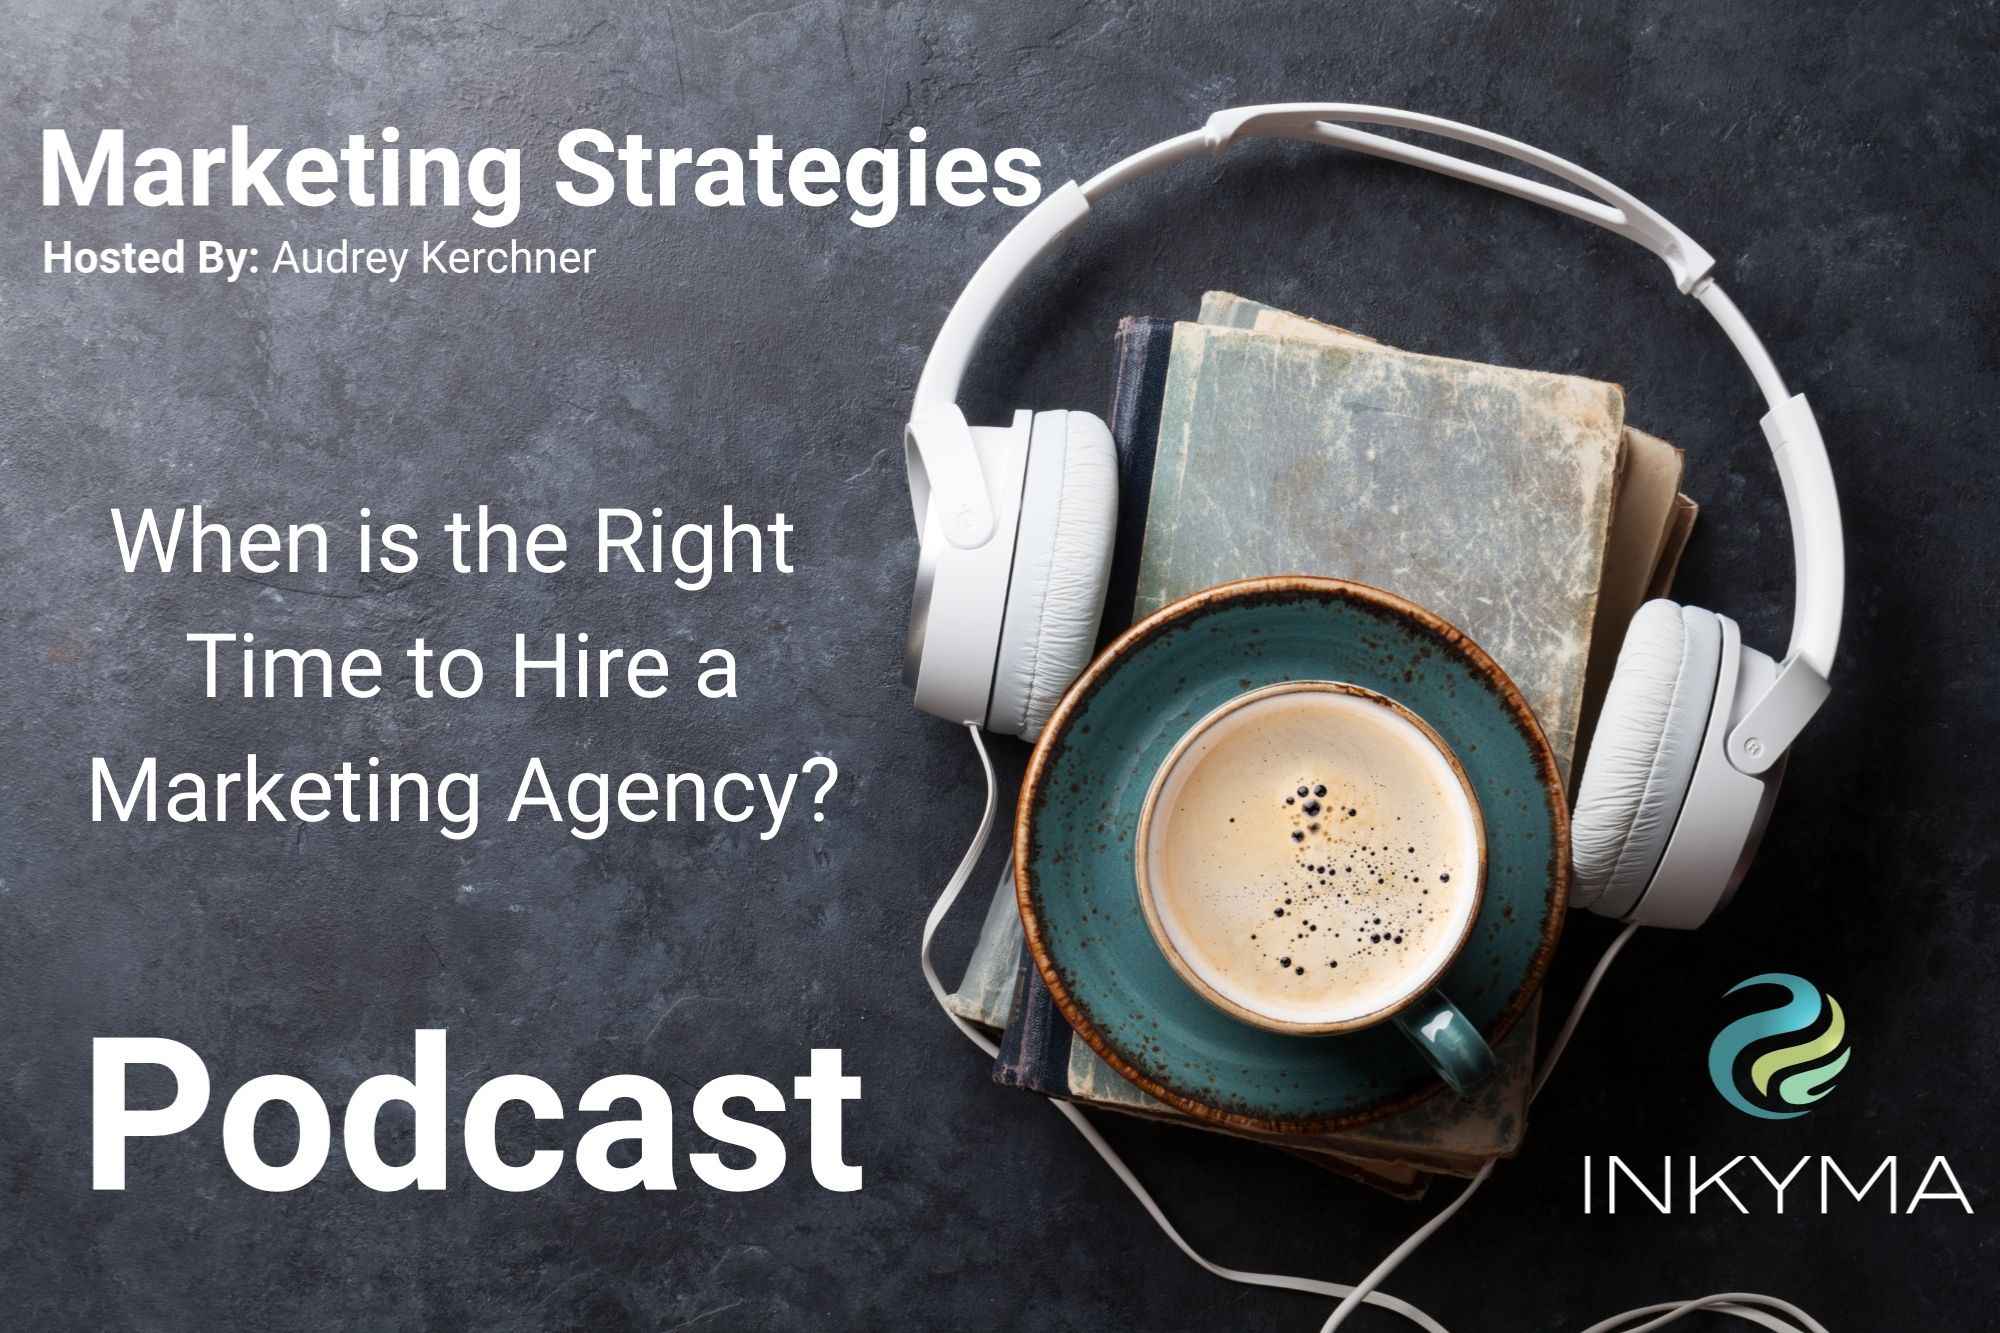 When Is the Right Time to Hire a Marketing Agency?